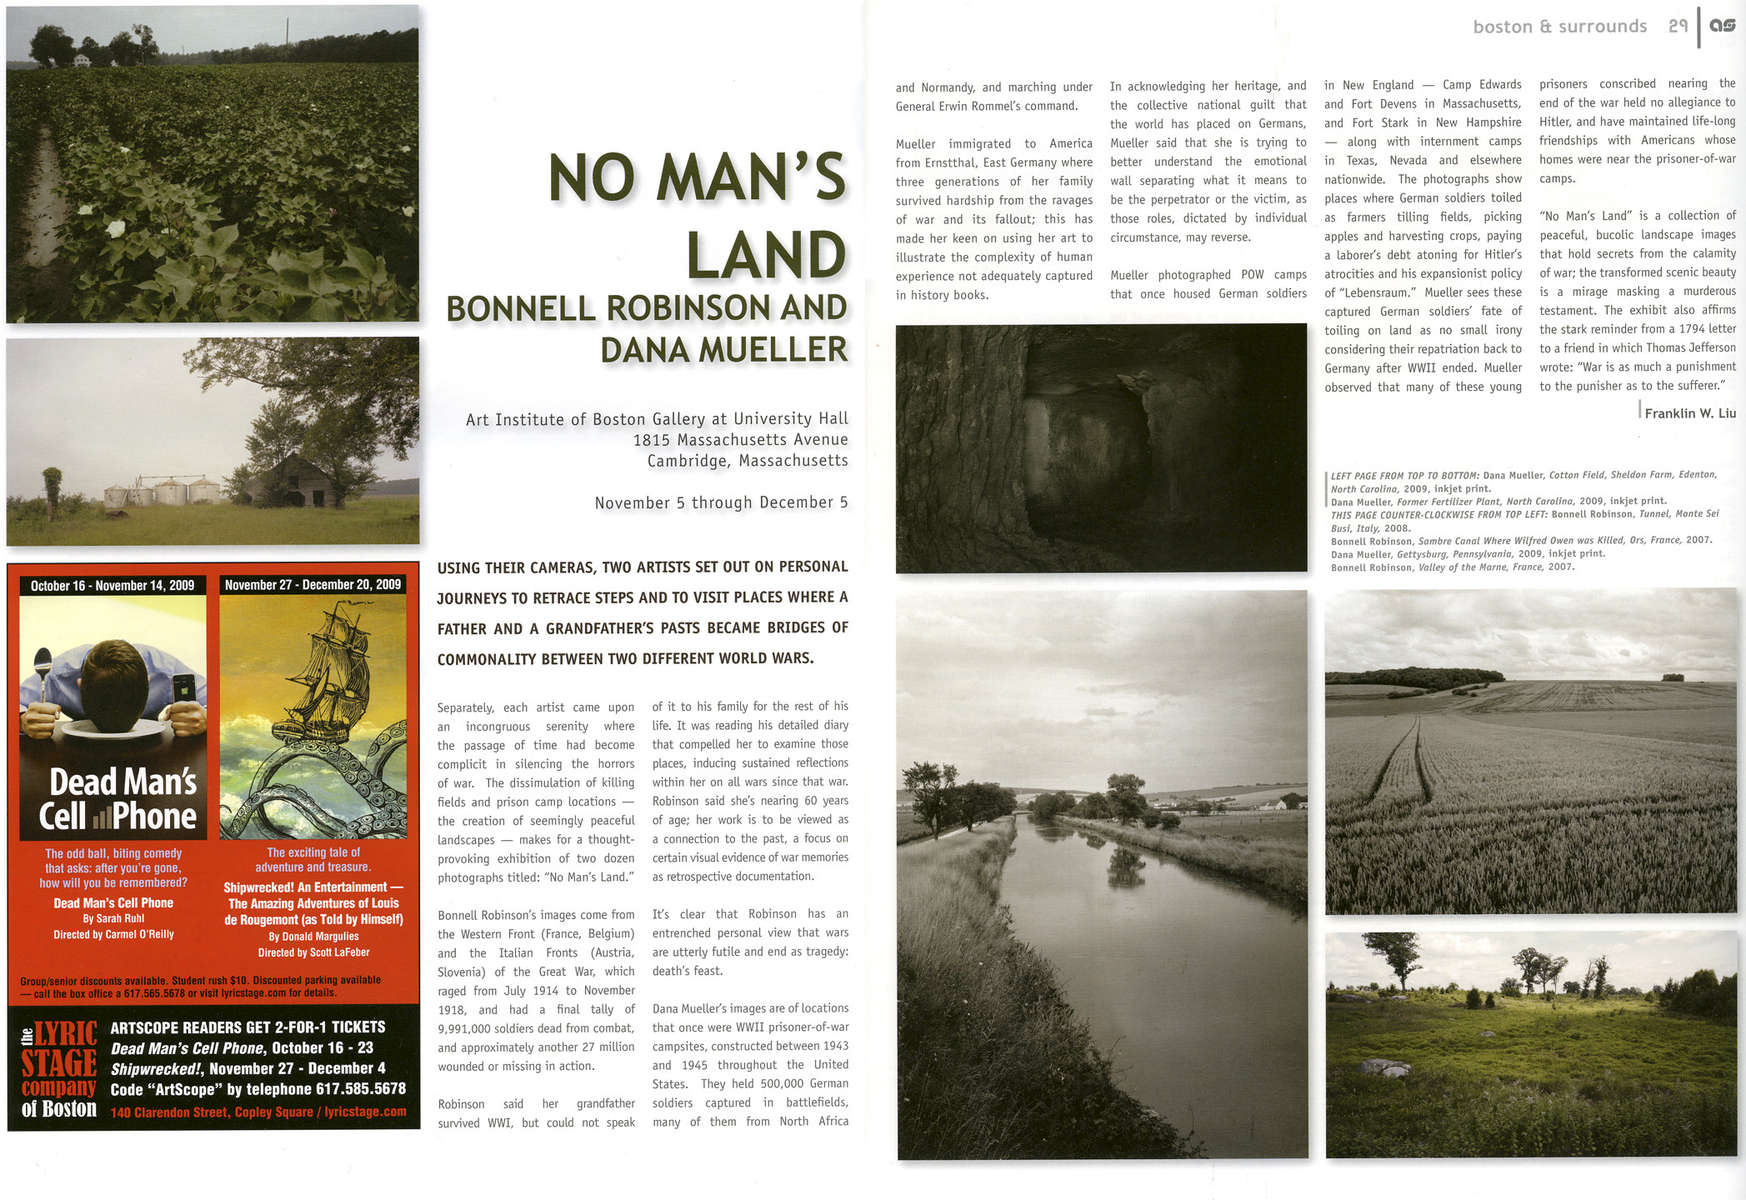 --NO MAN'S LAND Bonnell Robinson and Dana MuellerBy Franklin W. Liu